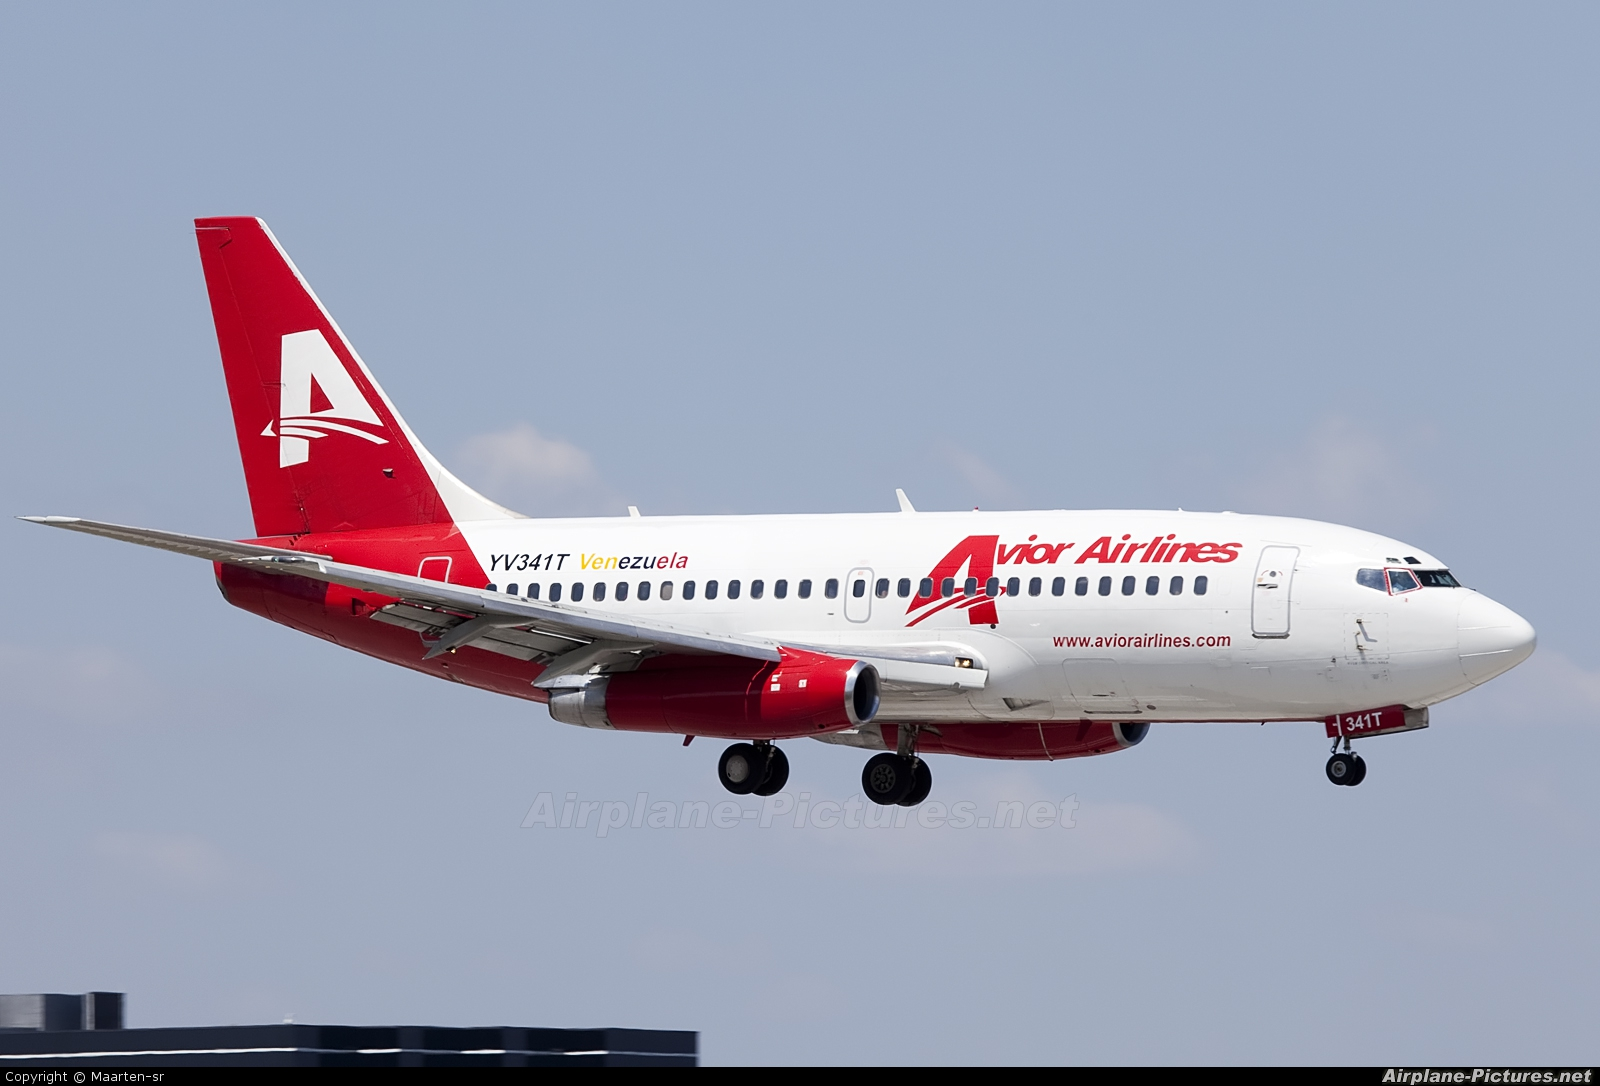 Avior Airlines #